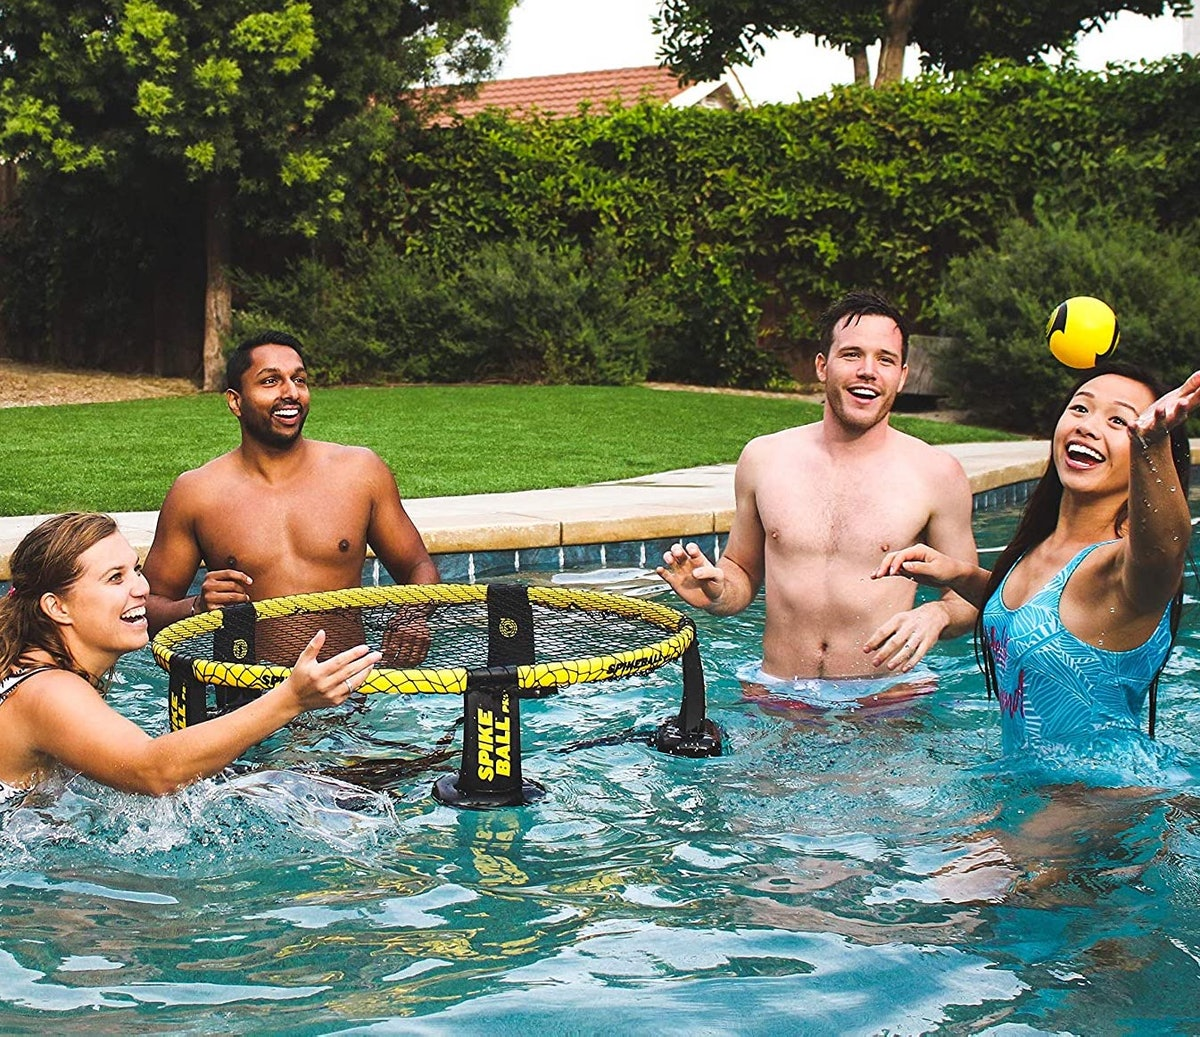 Spikeball Spikebuoy on Water Accessory Set